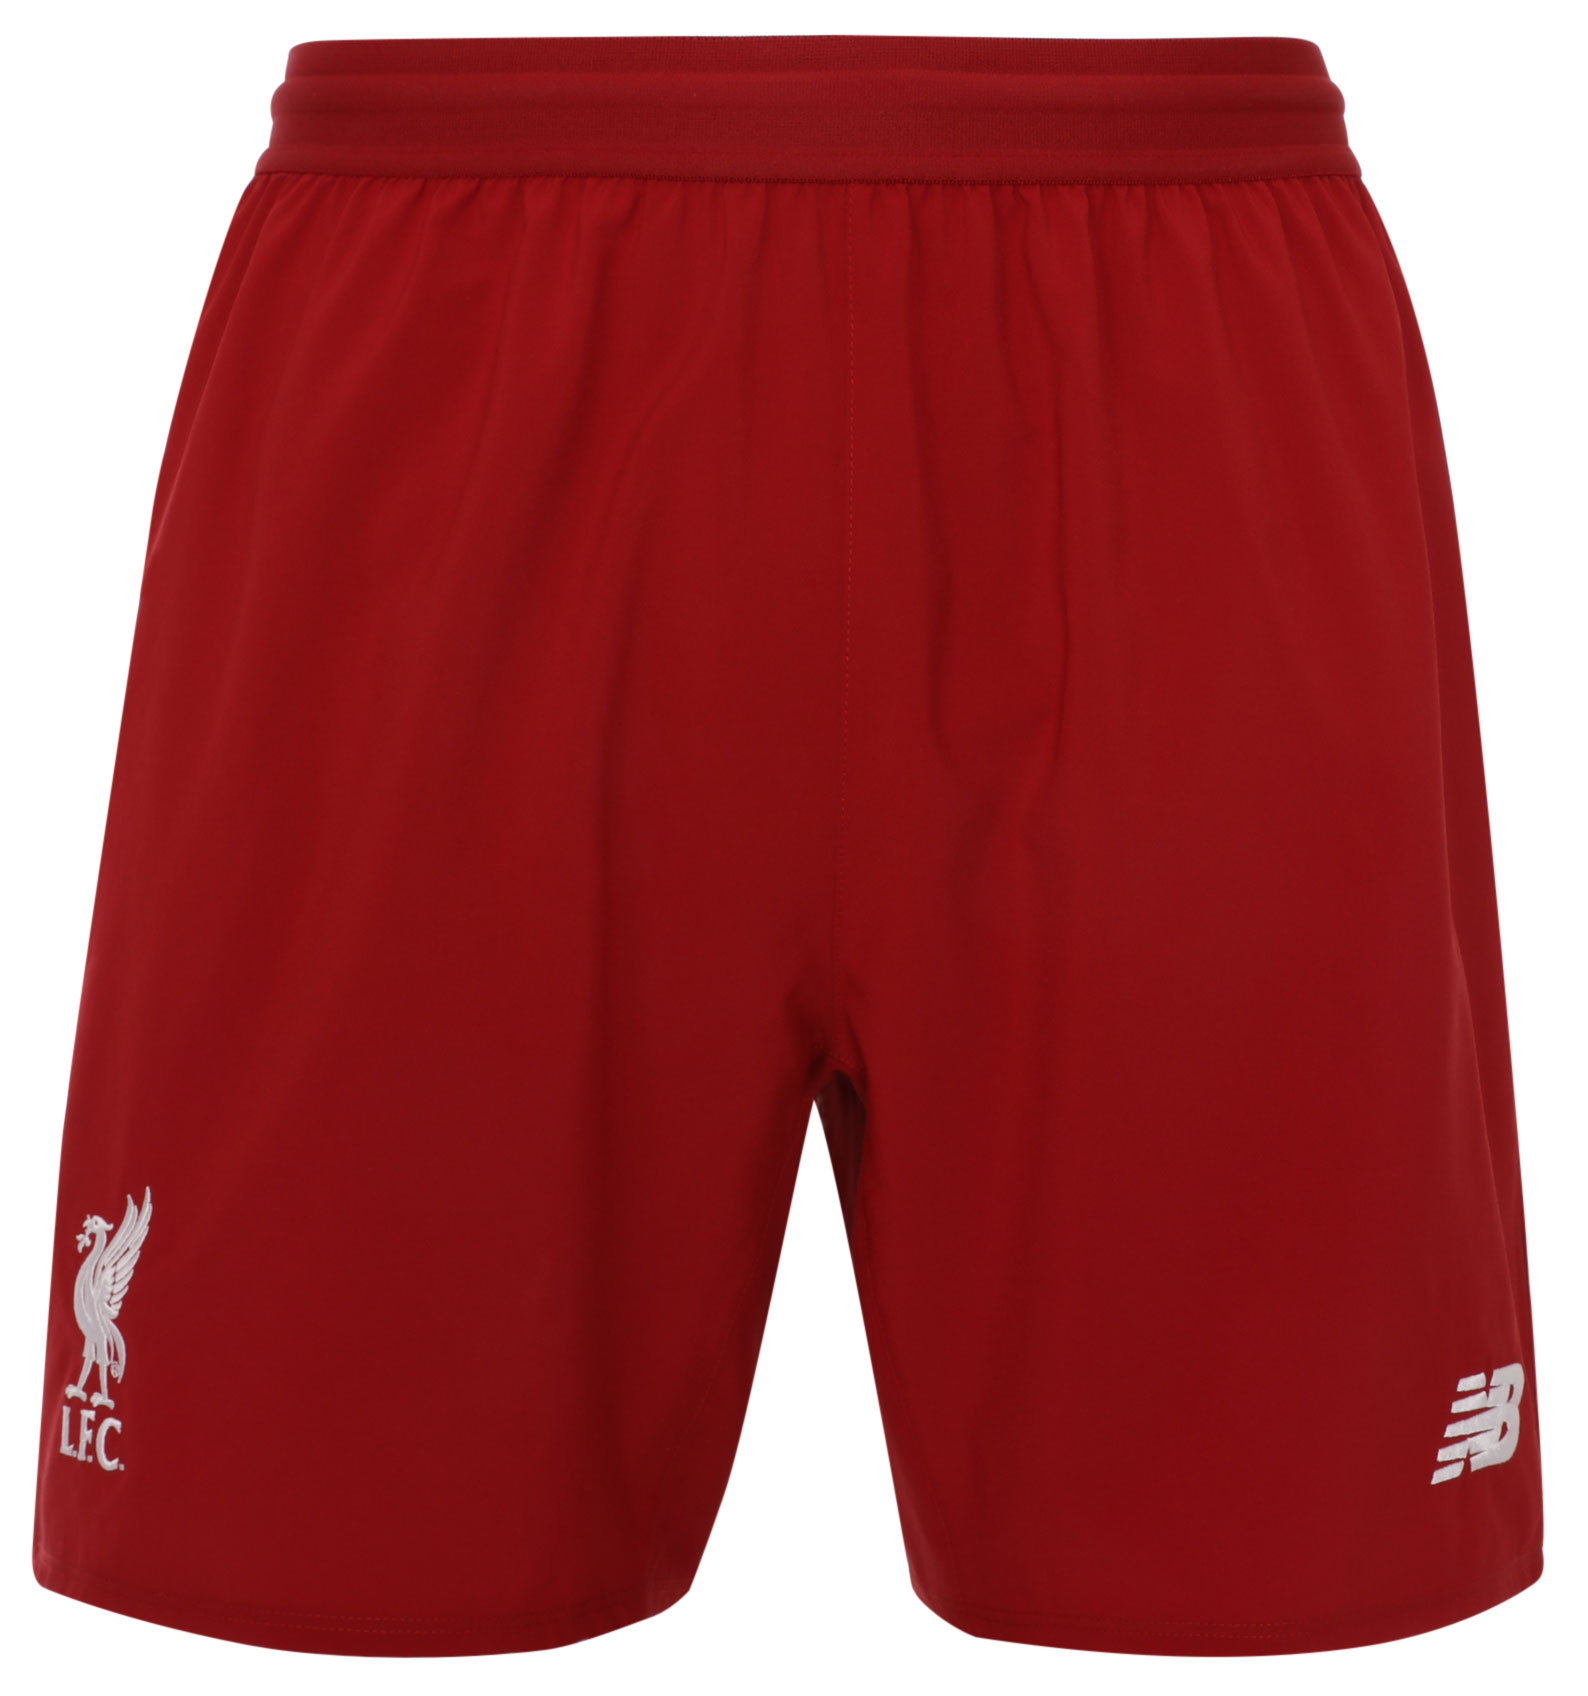 a6cd3b198 2018-19 LFC home kit revealed - pre-order now - Liverpool FC